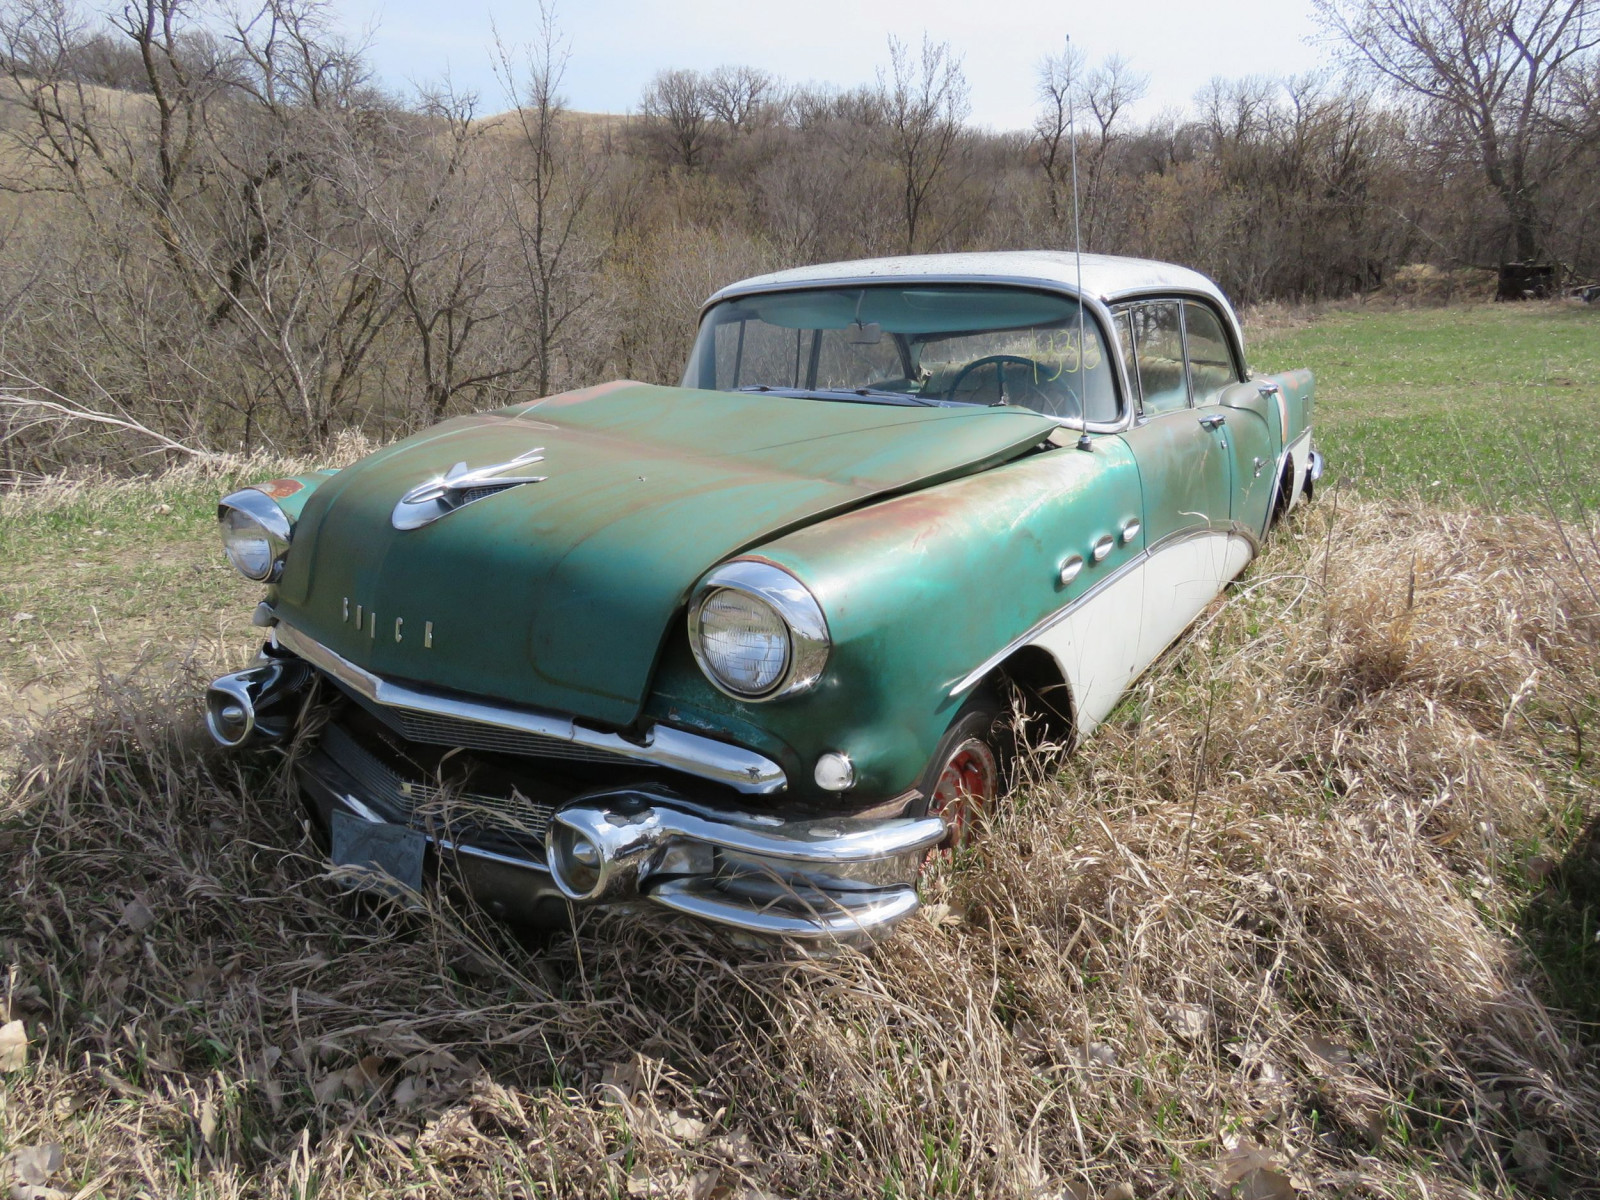 1956 Buick Special 4dr Hit 4C4046544 - Image 1